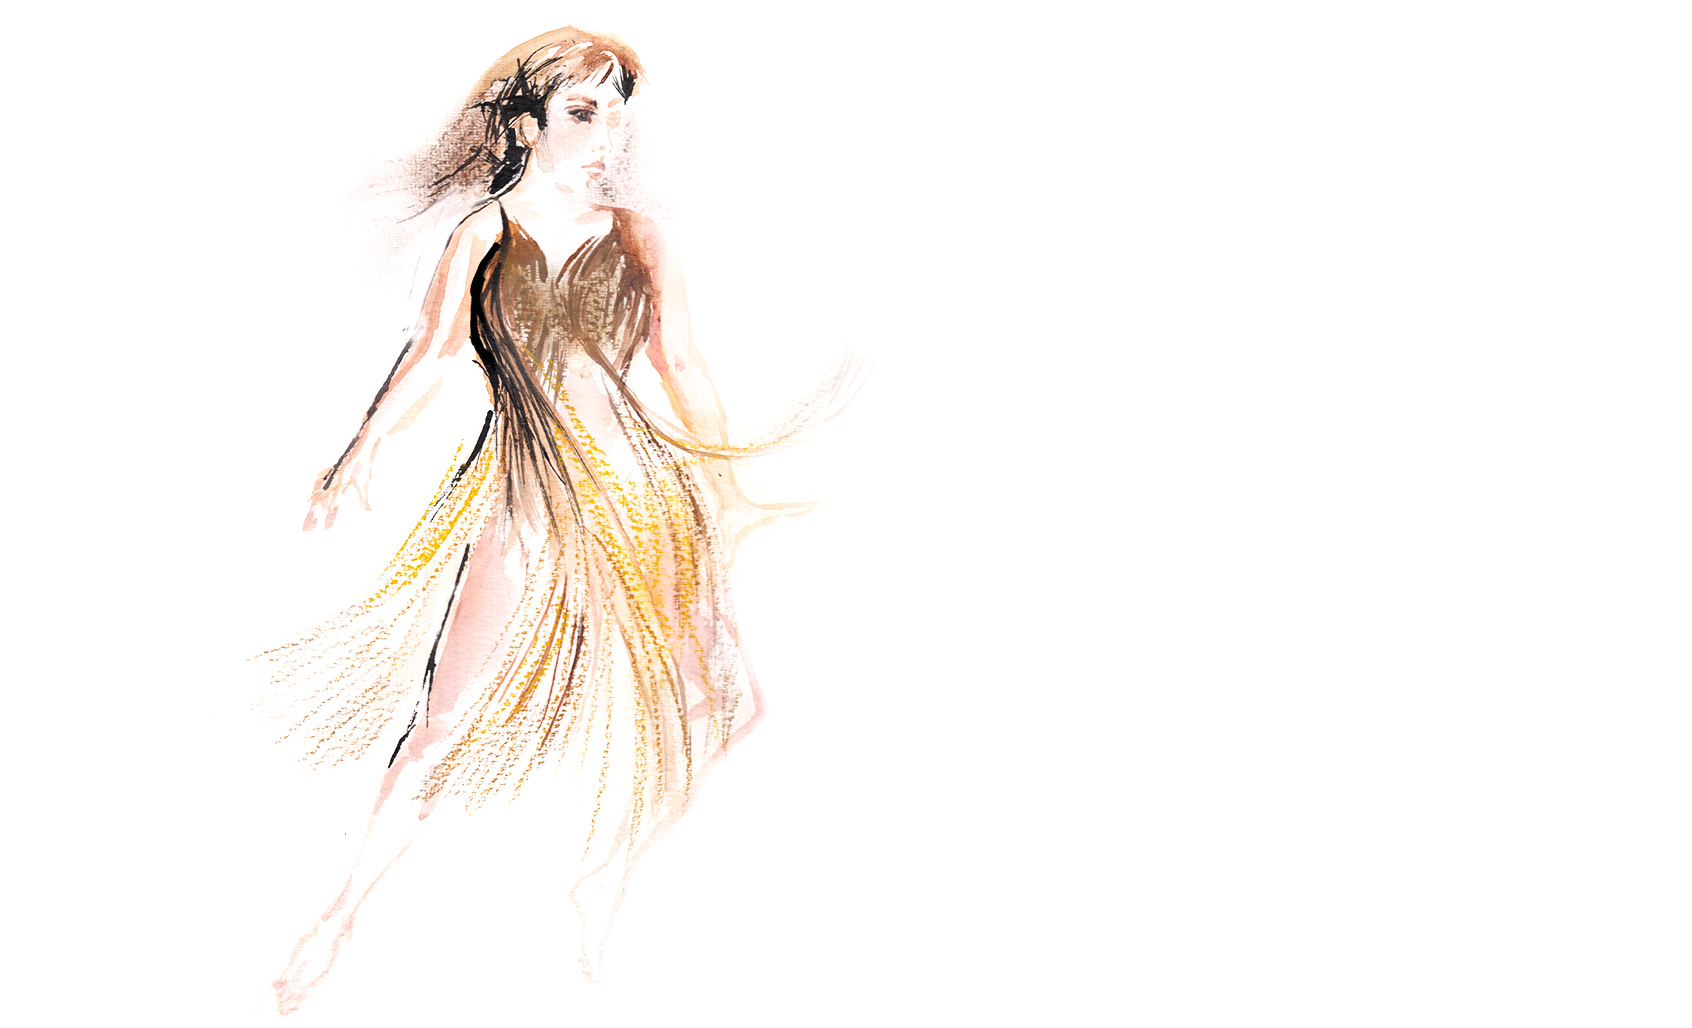 Claire Vivianne Sobottke wearing the hair dress in Meg Stuart's Until our hearts stop - illustration Araso